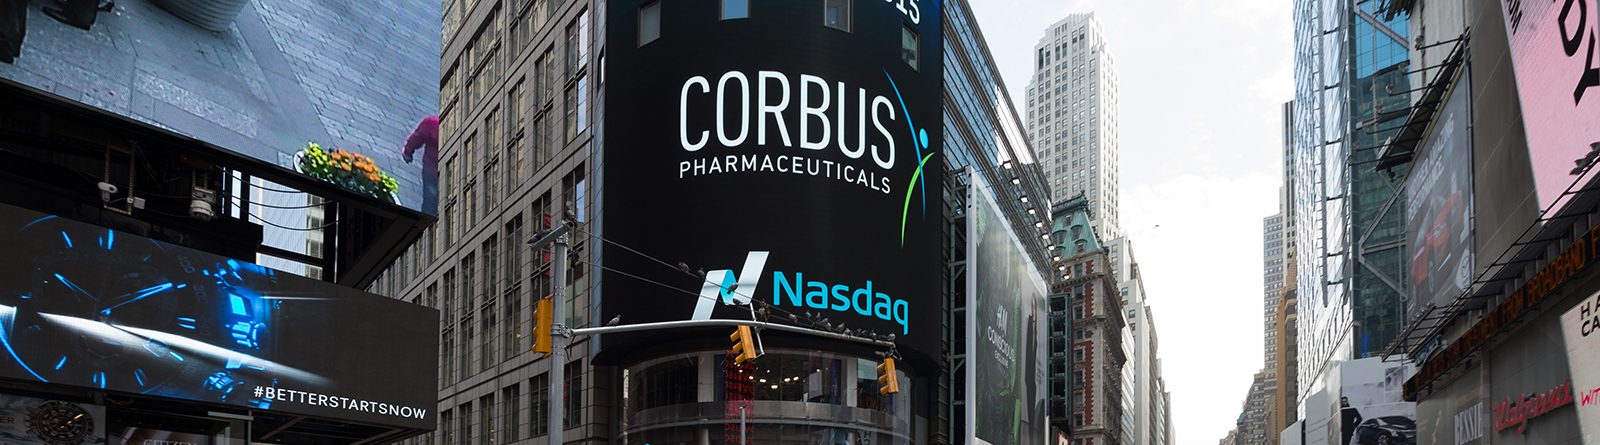 Corbus Pharmaceuticals Reports 2019 Second Quarter Financial Results and Provides Clinical and Corporate Updates Banner